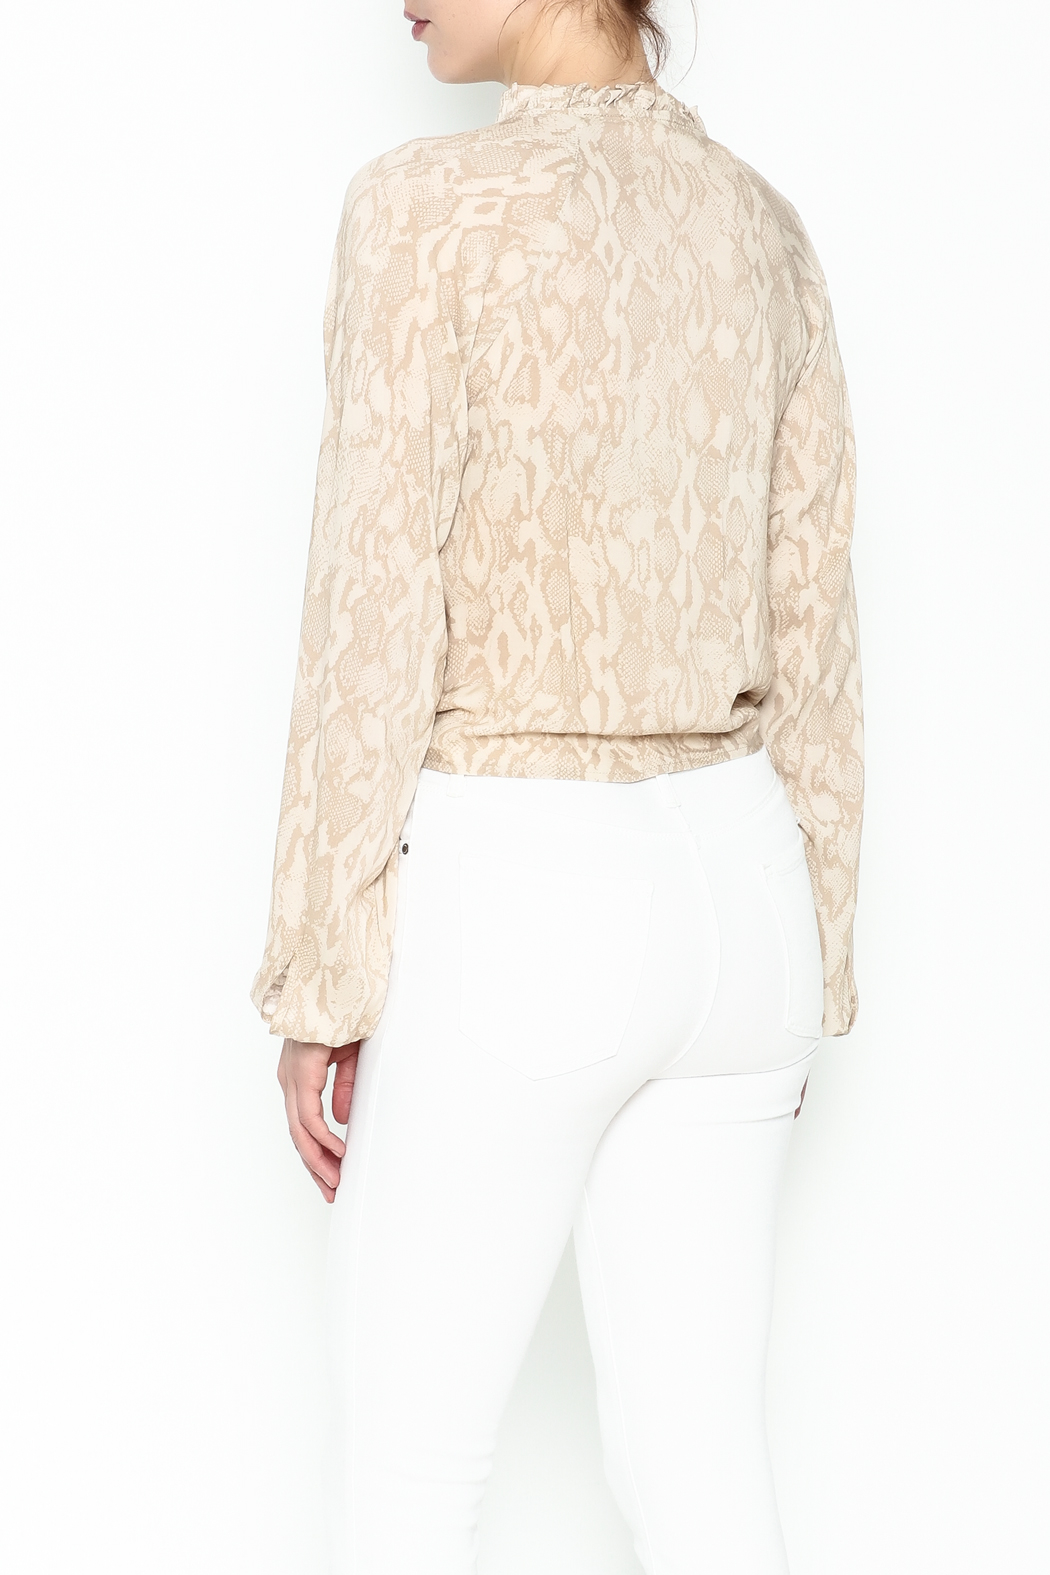 Olivaceous Python Tie Waist Top - Back Cropped Image